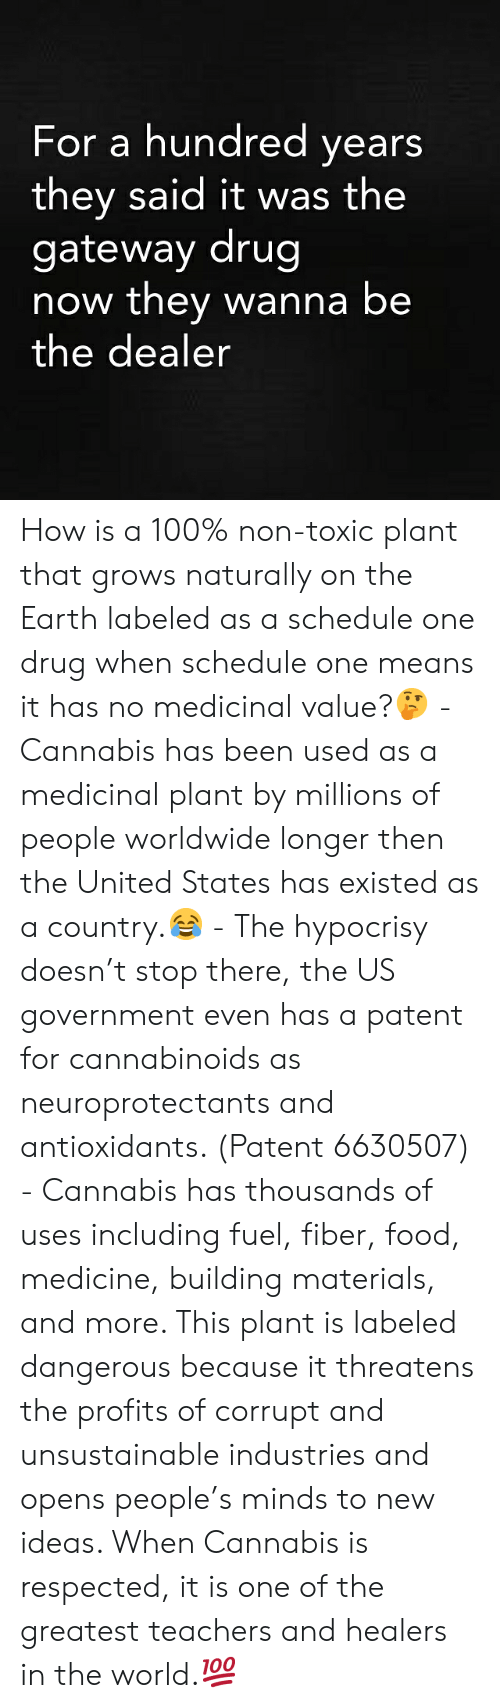 Threatens: For a hundred years  they said it was the  gateway drug  now they wanna be  the dealer How is a 100% non-toxic plant that grows naturally on the Earth labeled as a schedule one drug when schedule one means it has no medicinal value?🤔 - Cannabis has been used as a medicinal plant by millions of people worldwide longer then the United States has existed as a country.😂 - The hypocrisy doesn't stop there, the US government even has a patent for cannabinoids as neuroprotectants and antioxidants. (Patent 6630507) - Cannabis has thousands of uses including fuel, fiber, food, medicine, building materials, and more. This plant is labeled dangerous because it threatens the profits of corrupt and unsustainable industries and opens people's minds to new ideas. When Cannabis is respected, it is one of the greatest teachers and healers in the world.💯